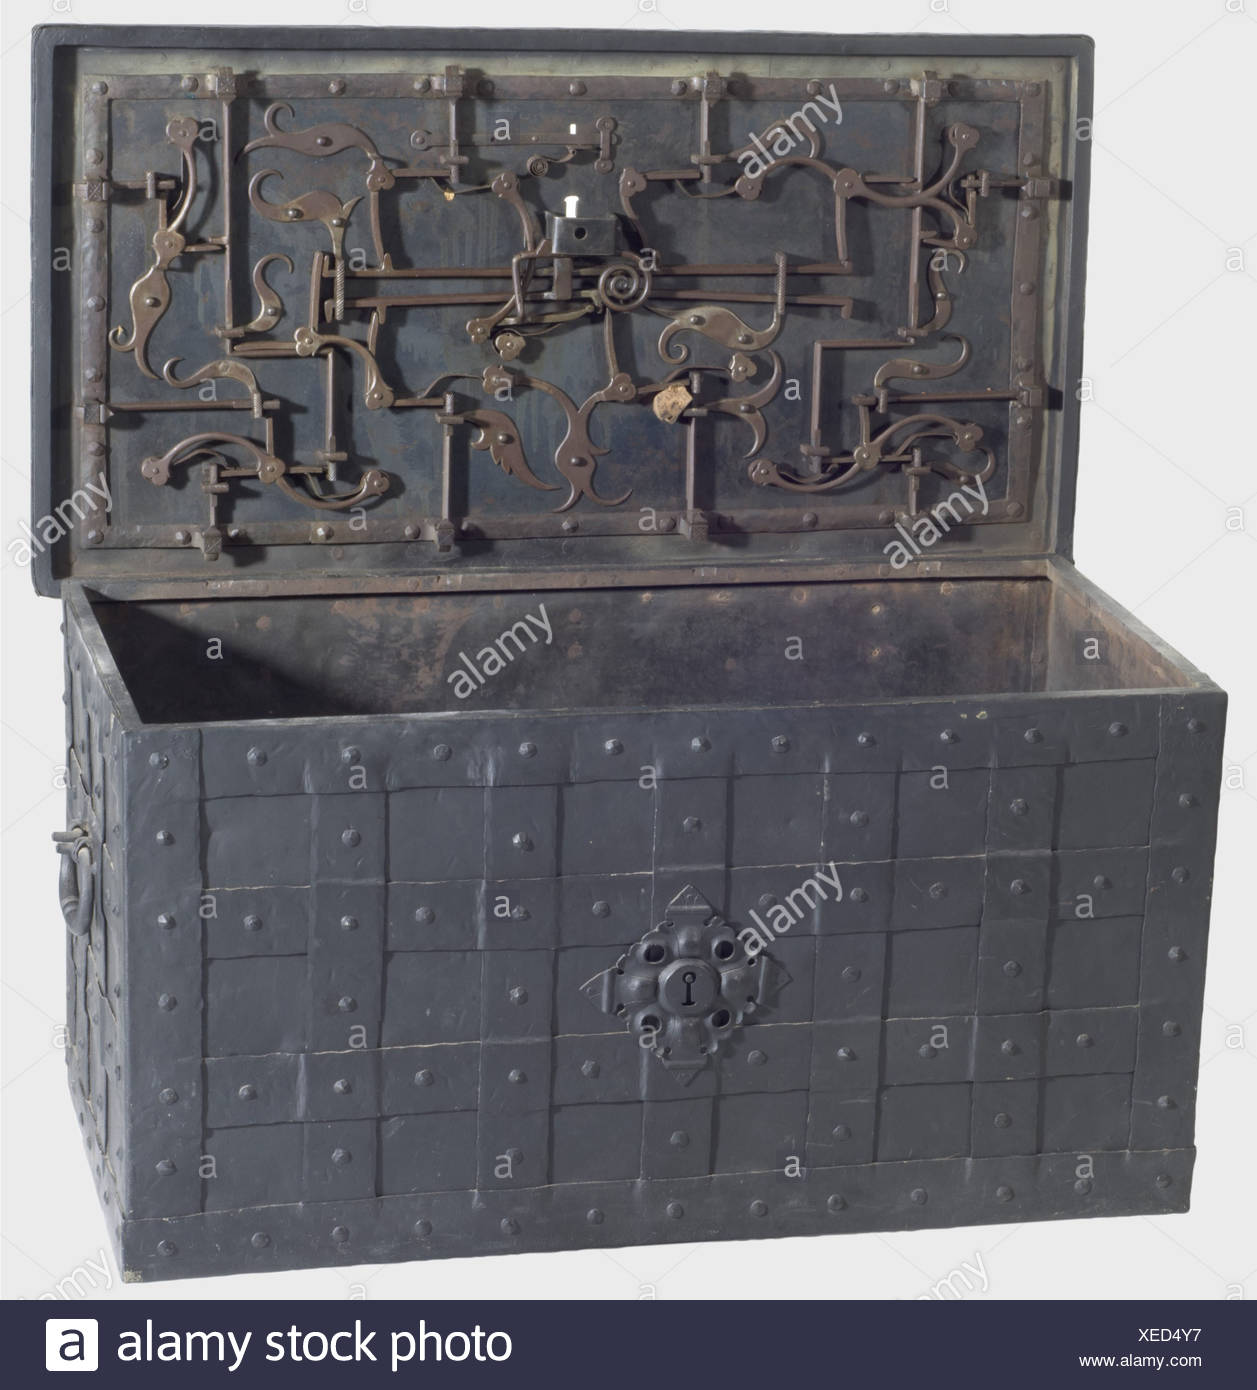 A large German war chest, 1st half of the 17th century. Iron chest reinforced with straps. Lateral handels and a false lock on the front. Lid with (supplemented) concealed keyhole cover, three hinges and twelve bolts. Later key. Dimensions 84.5 x 44.5 x 42 cm. historic, historical, 17th century, storage, box, boxes, cabinet, chest, cabinets, chests, piece of furniture, pieces of furniture, furnishings, object, objects, stills, clipping, clippings, cut out, cut-out, cut-outs, Additional-Rights-Clearances-NA - Stock Image